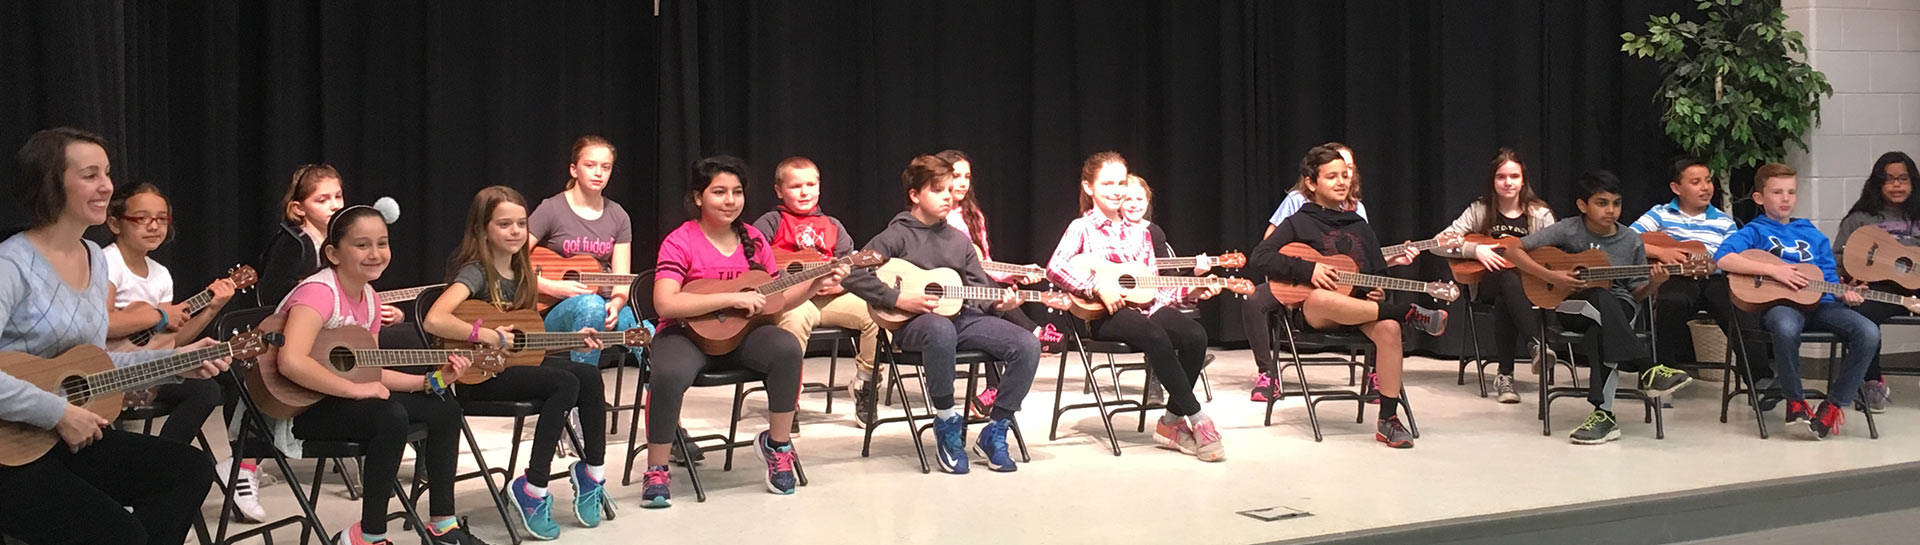 Support A Project - Ukulele Club